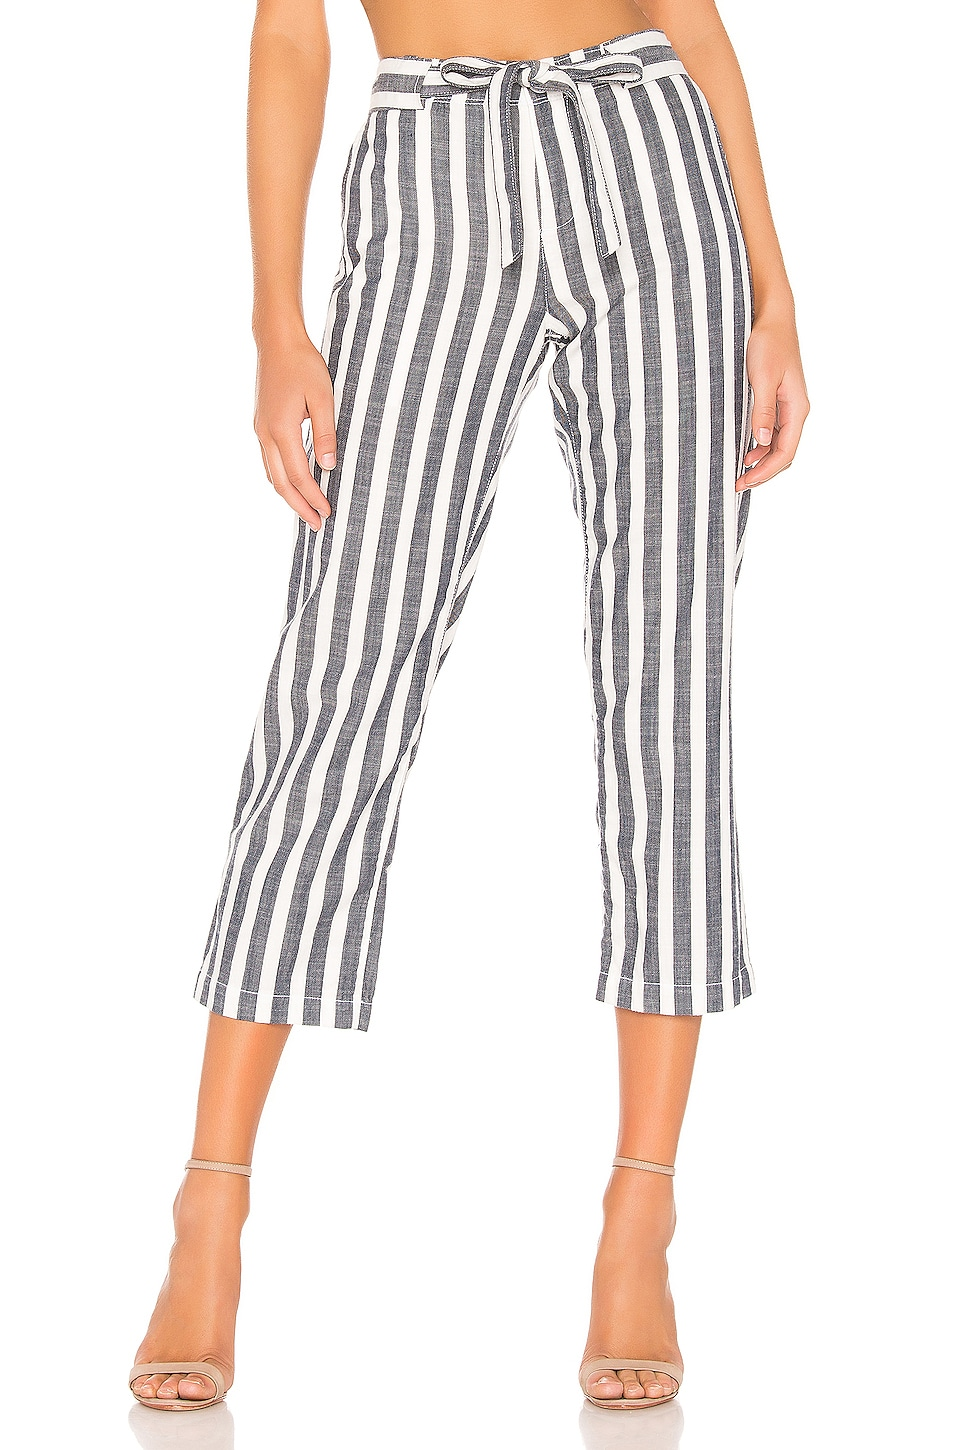 Sanctuary Sasha Stripe Crop Pant in Raven Stripe